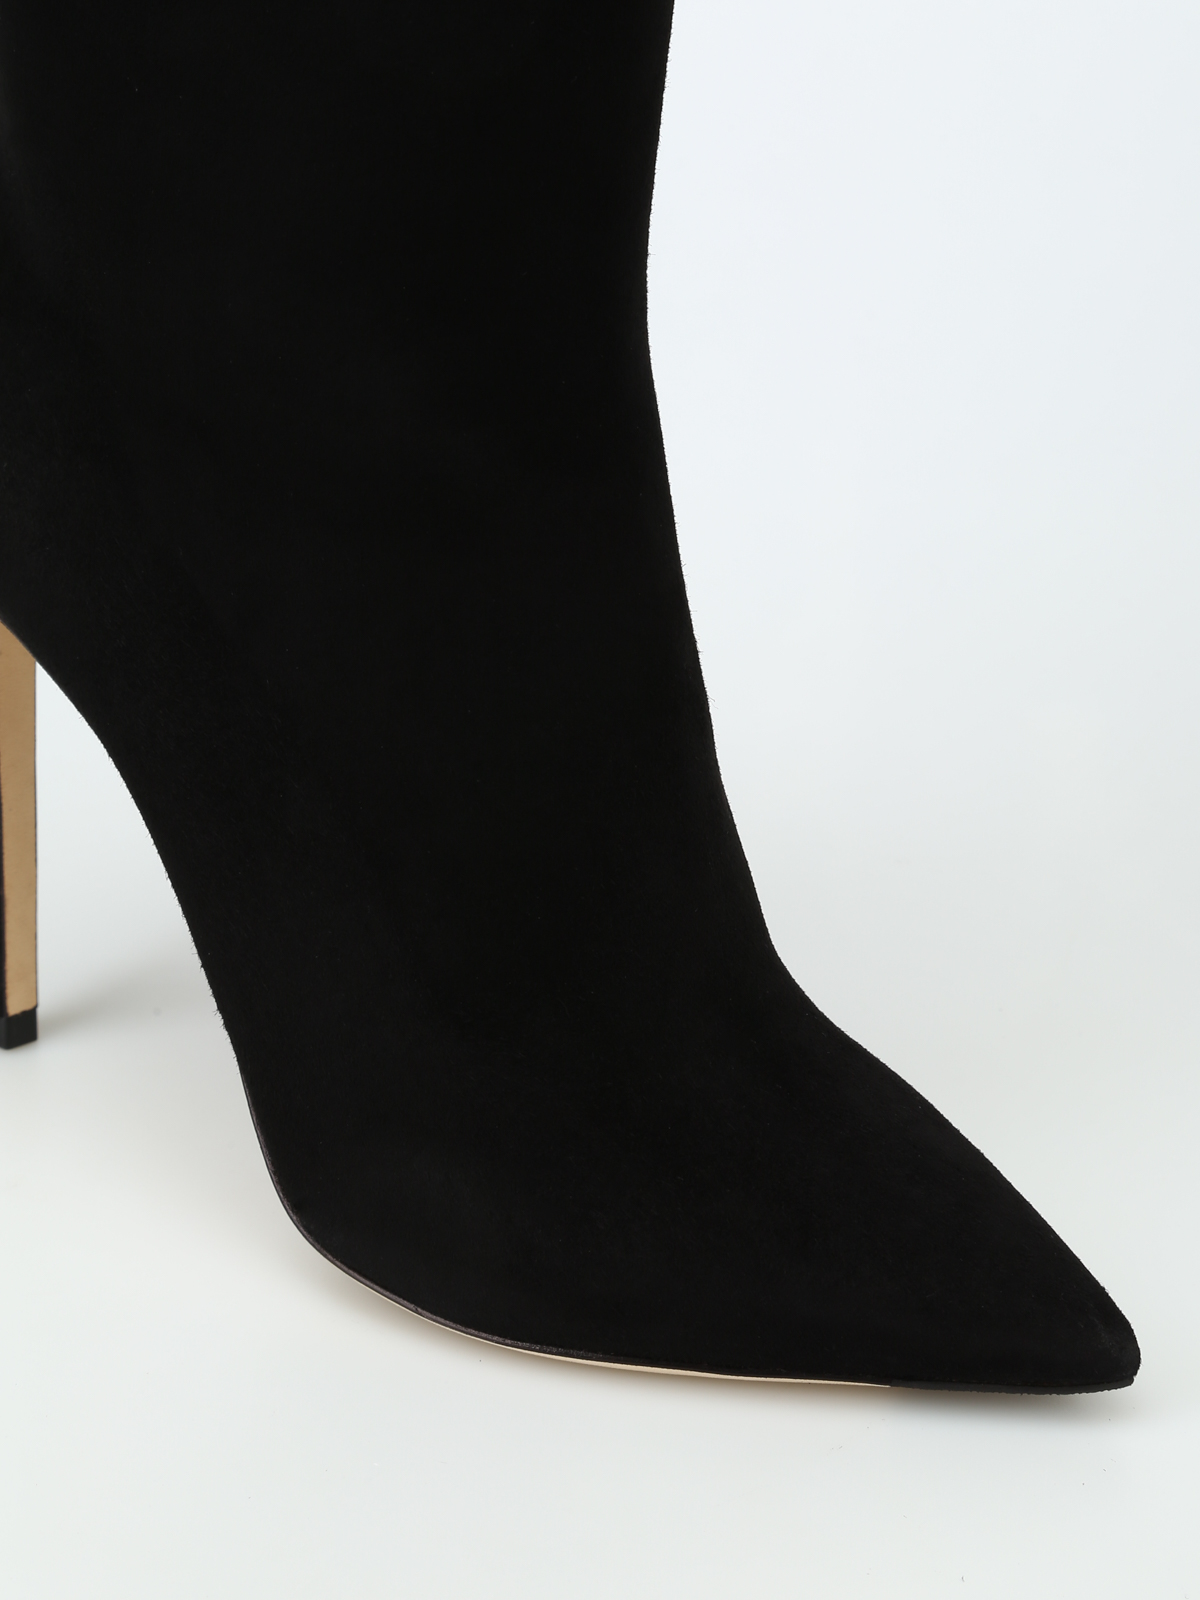 a150f819ef29 iKRIX JIMMY CHOO  ankle boots - Helaine 100 black suede heeled booties